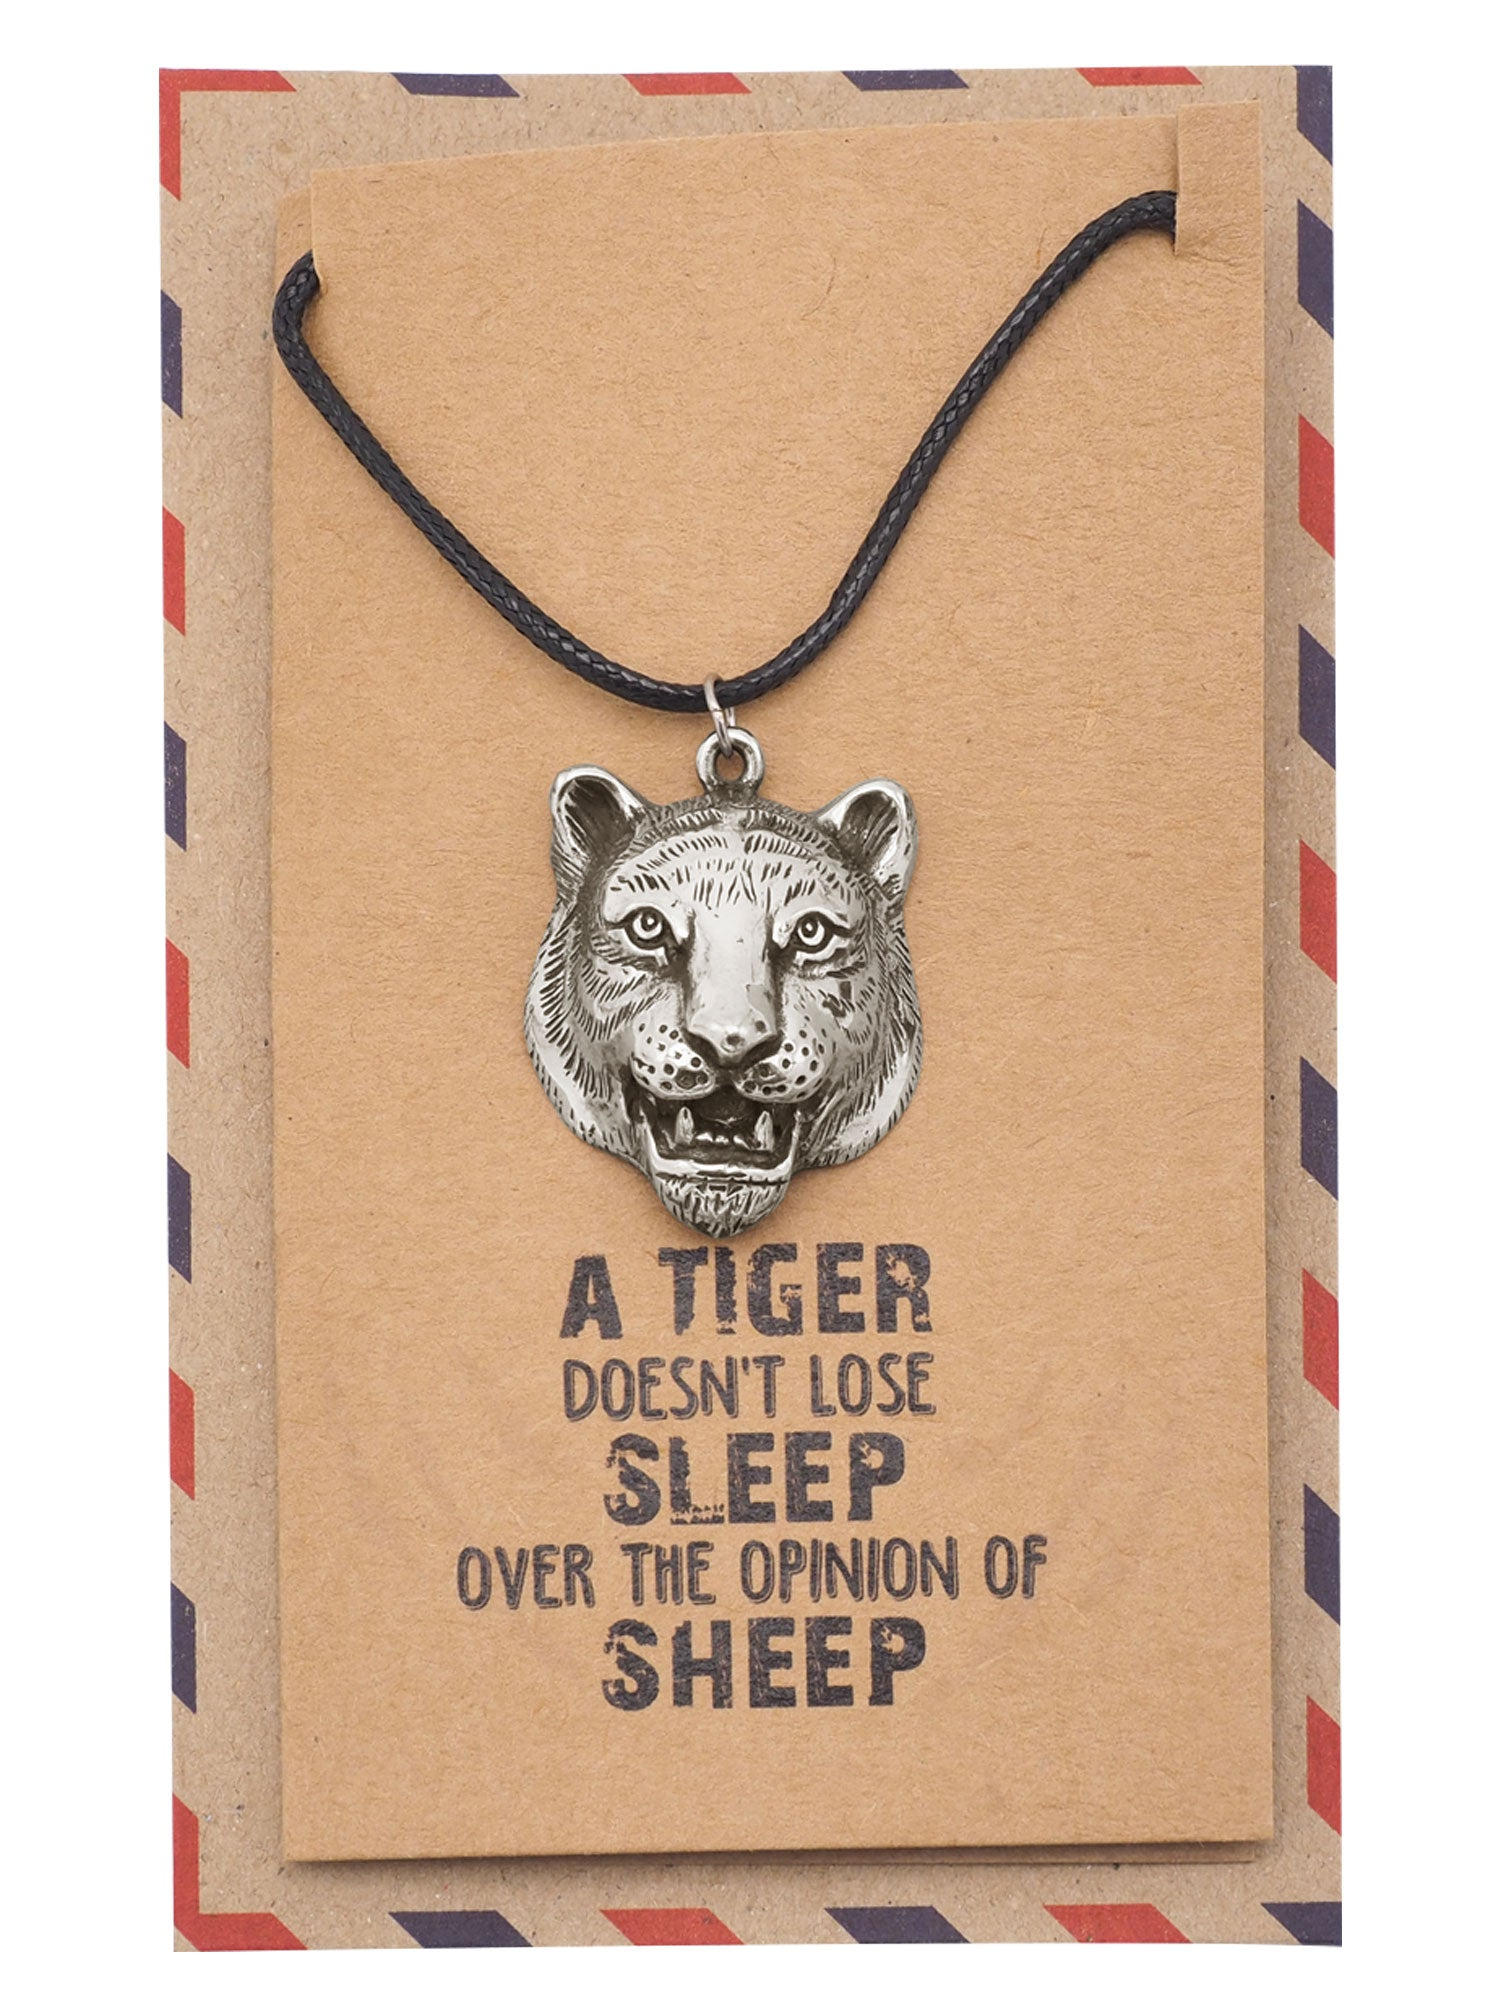 Ephraim Tiger Necklace, Jewelry Gift for Women, Inspirational Gift with Greeting Card - Quan Jewelry